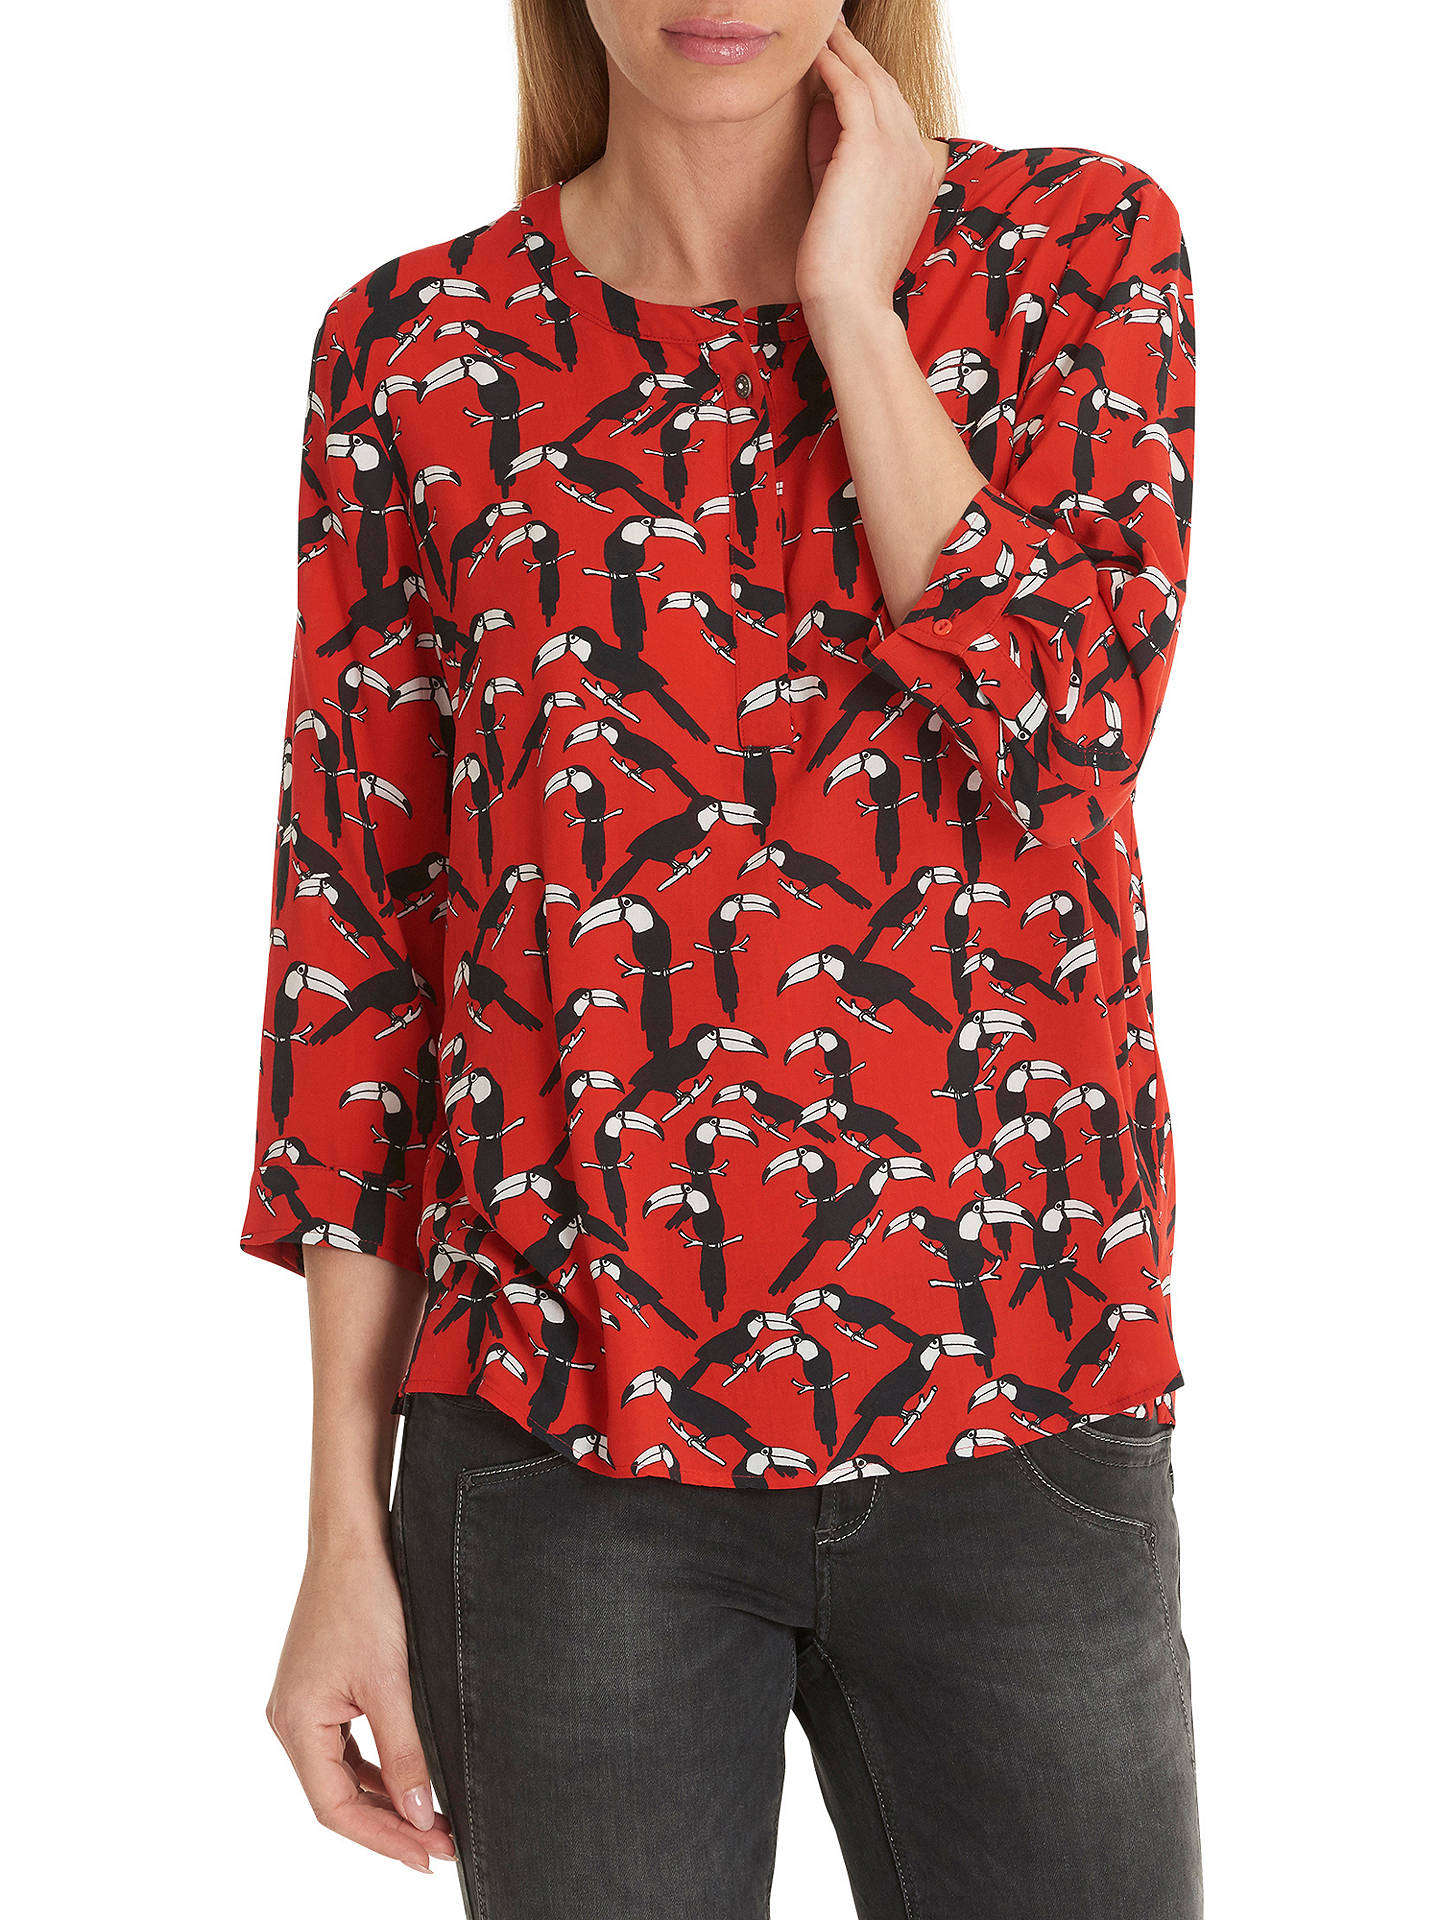 BuyBetty Barclay Toucan Print Blouse, Red/Black, 10 Online at johnlewis.com